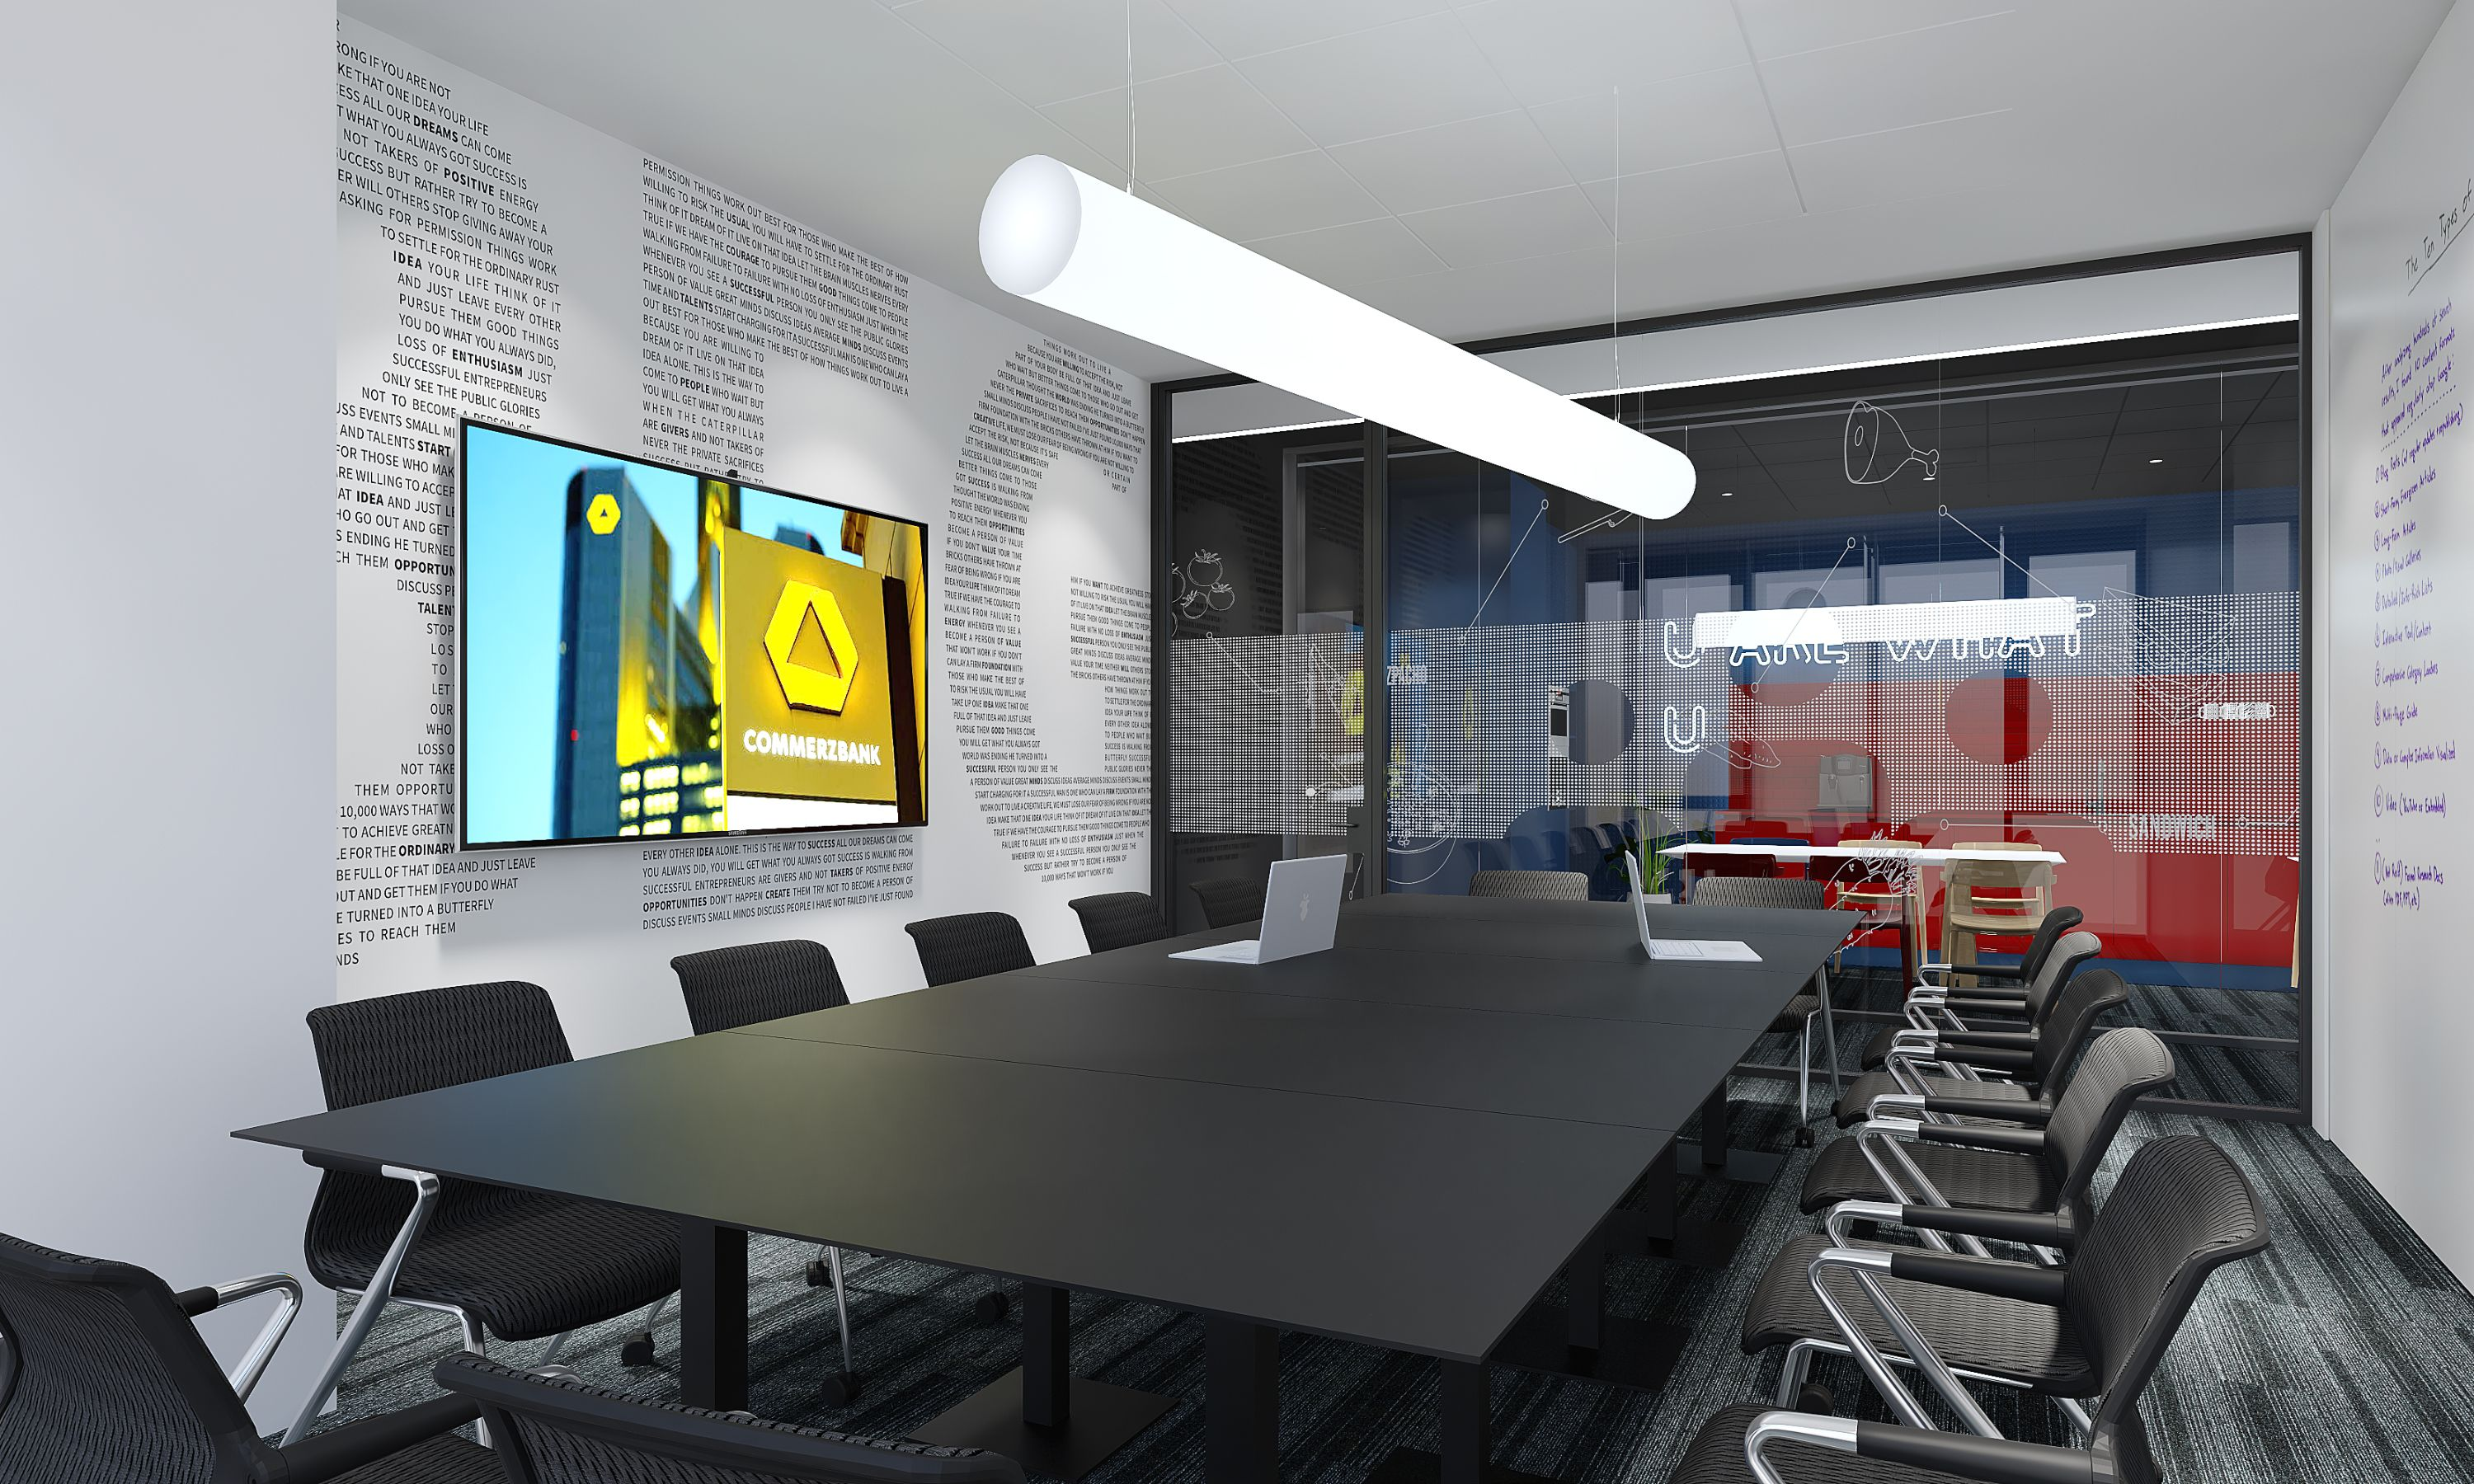 08 meeting room.jpg